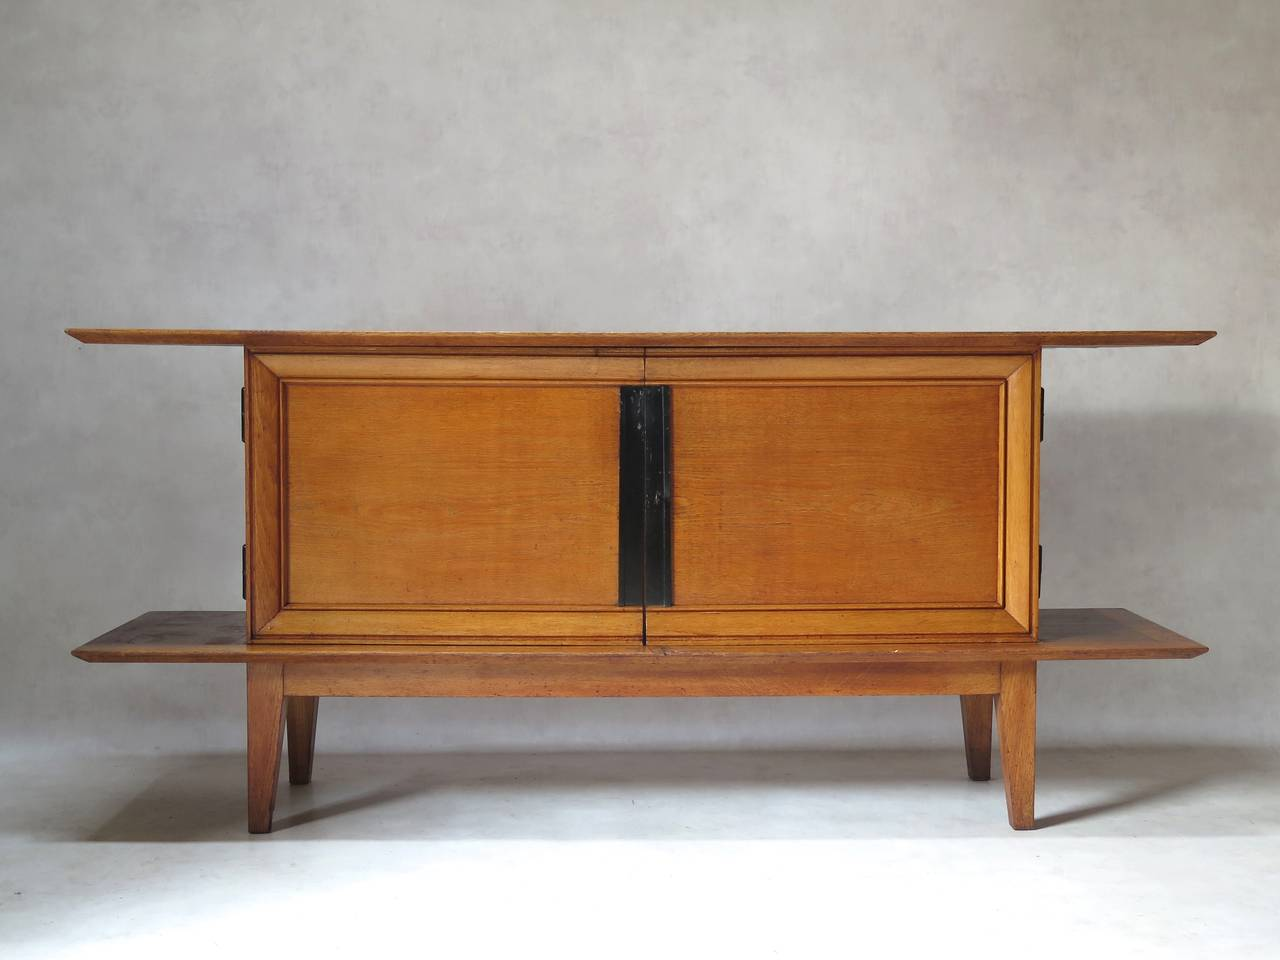 Japanese-Inspired Oak Credenza and Dining Table by Colette Gueden, France,  1950s 3